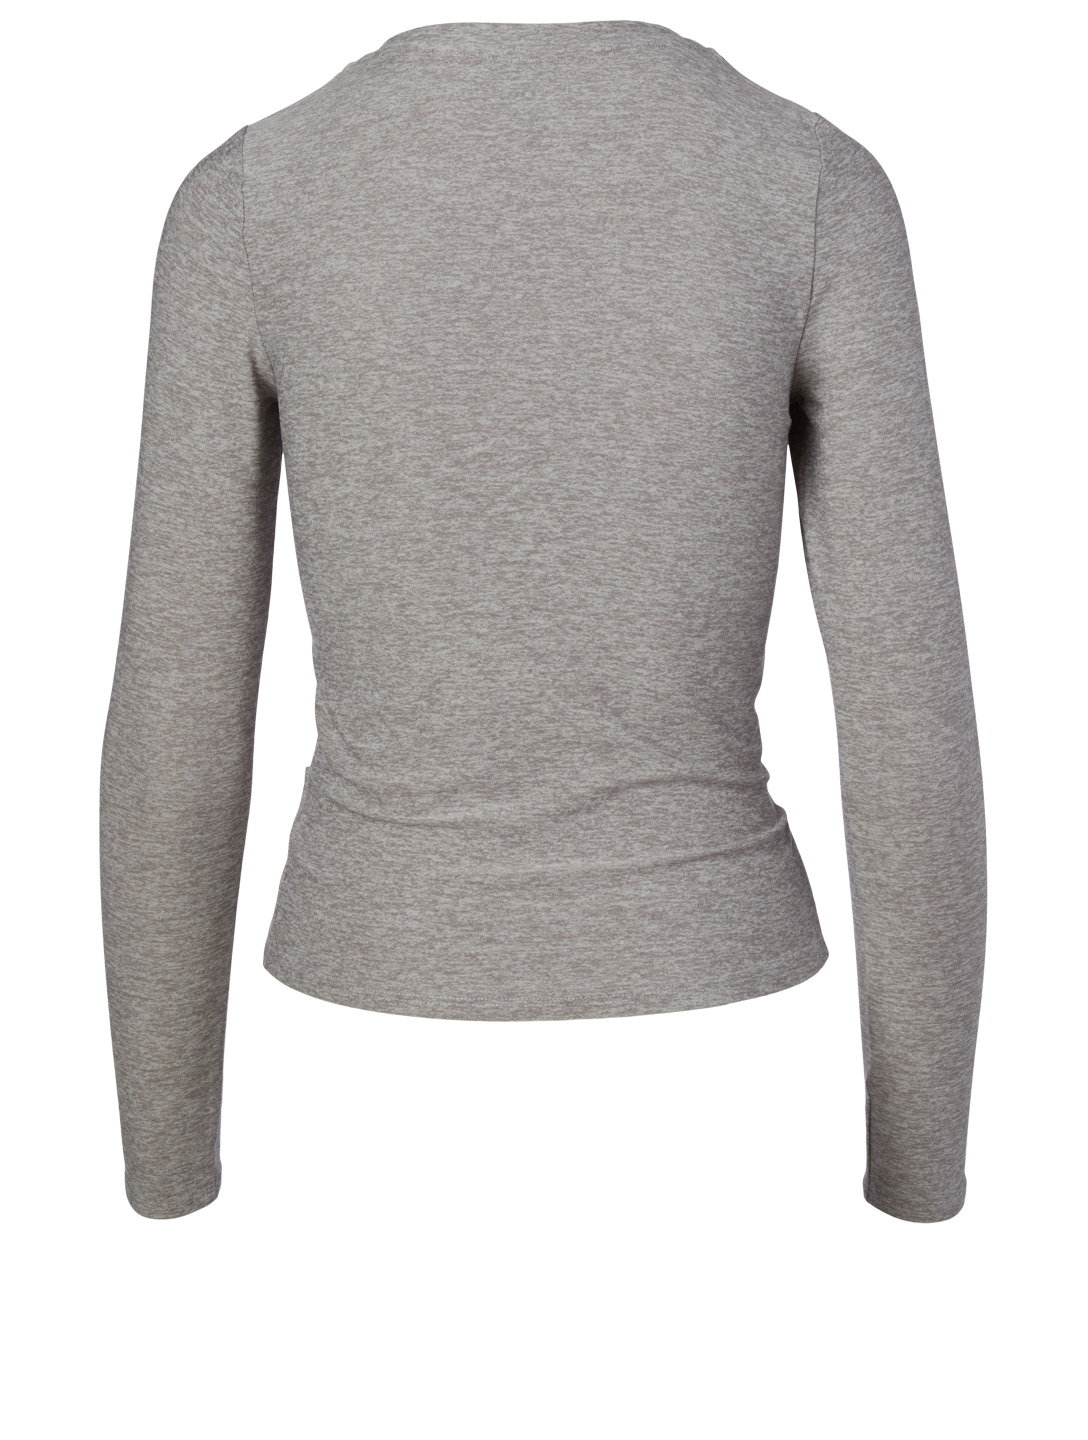 BEYOND YOGA Under Over Lightweight Long Sleeve Top Women's Grey